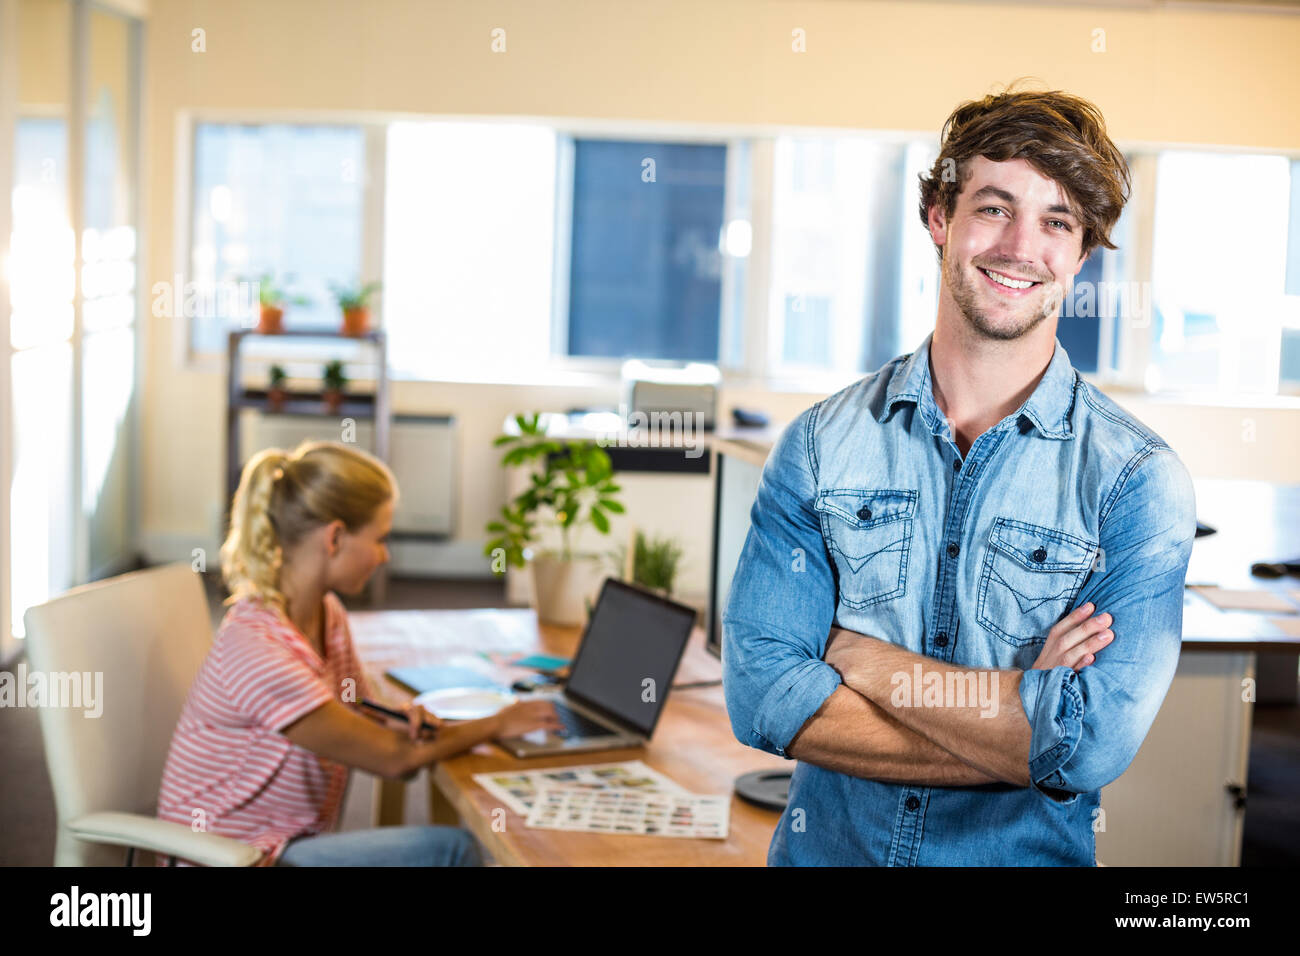 Smiling businessman posing with his partner behind him - Stock Image